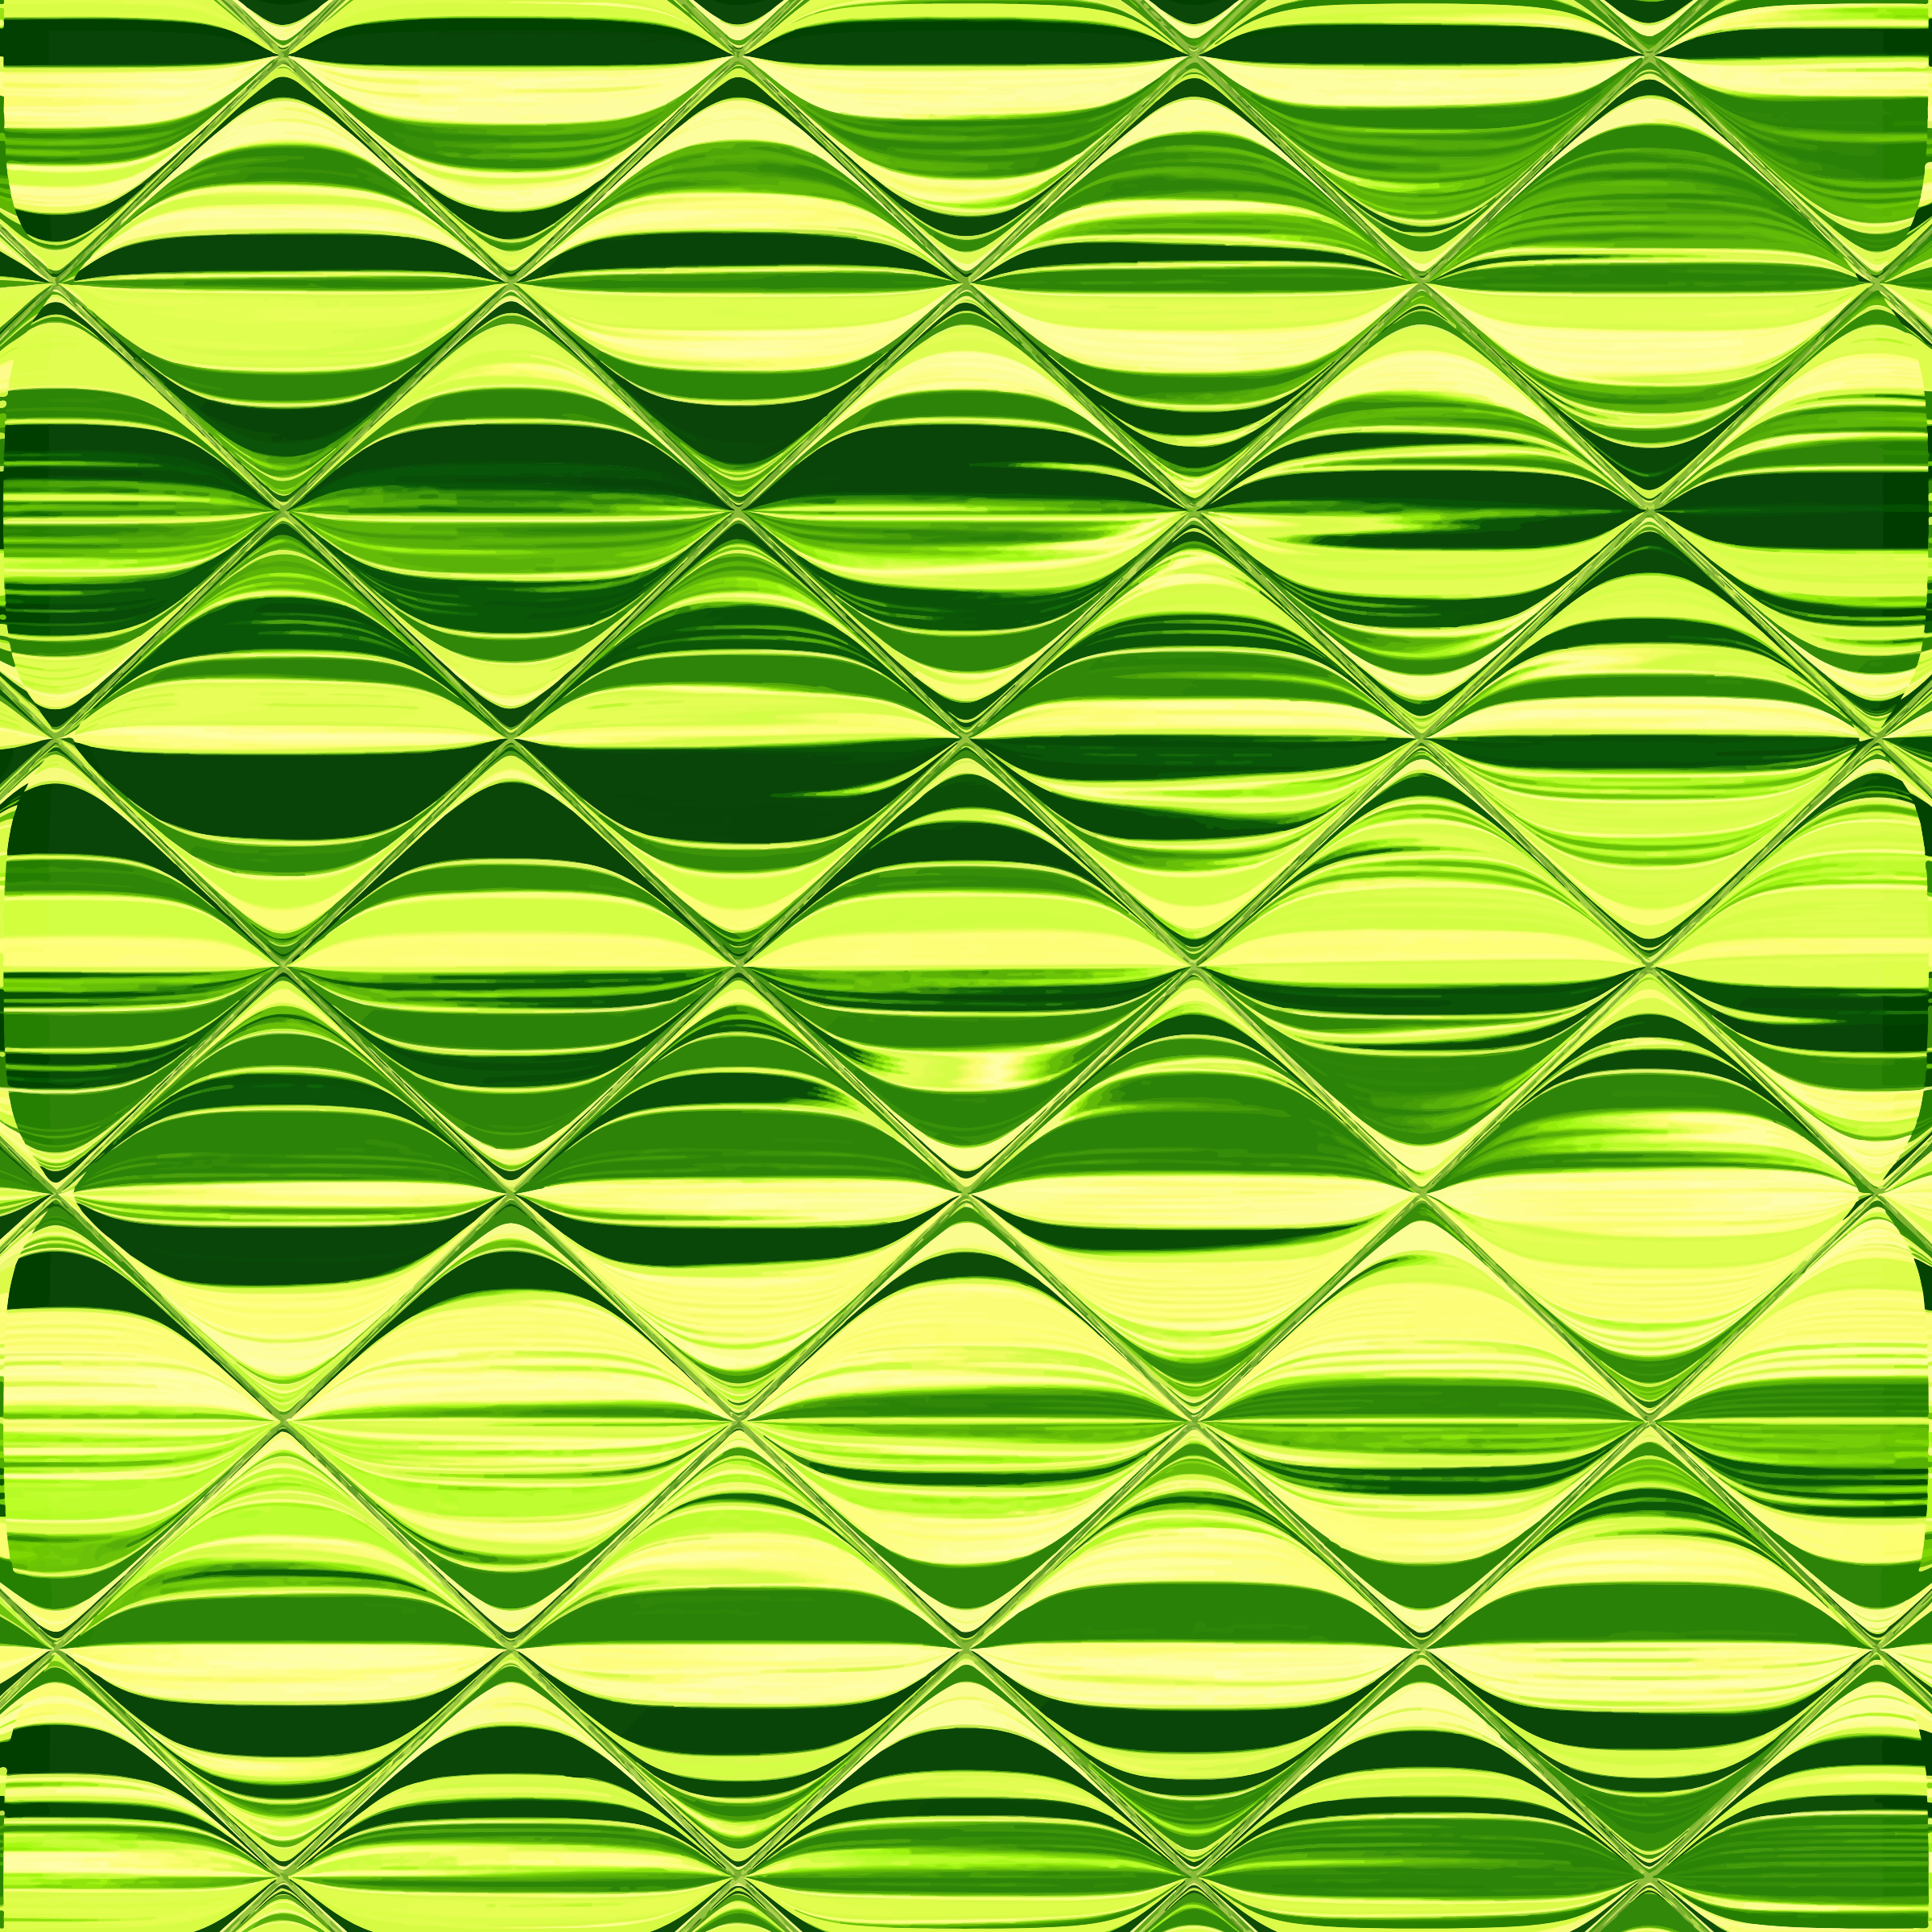 Wavy background 6 (colour 2) by Firkin